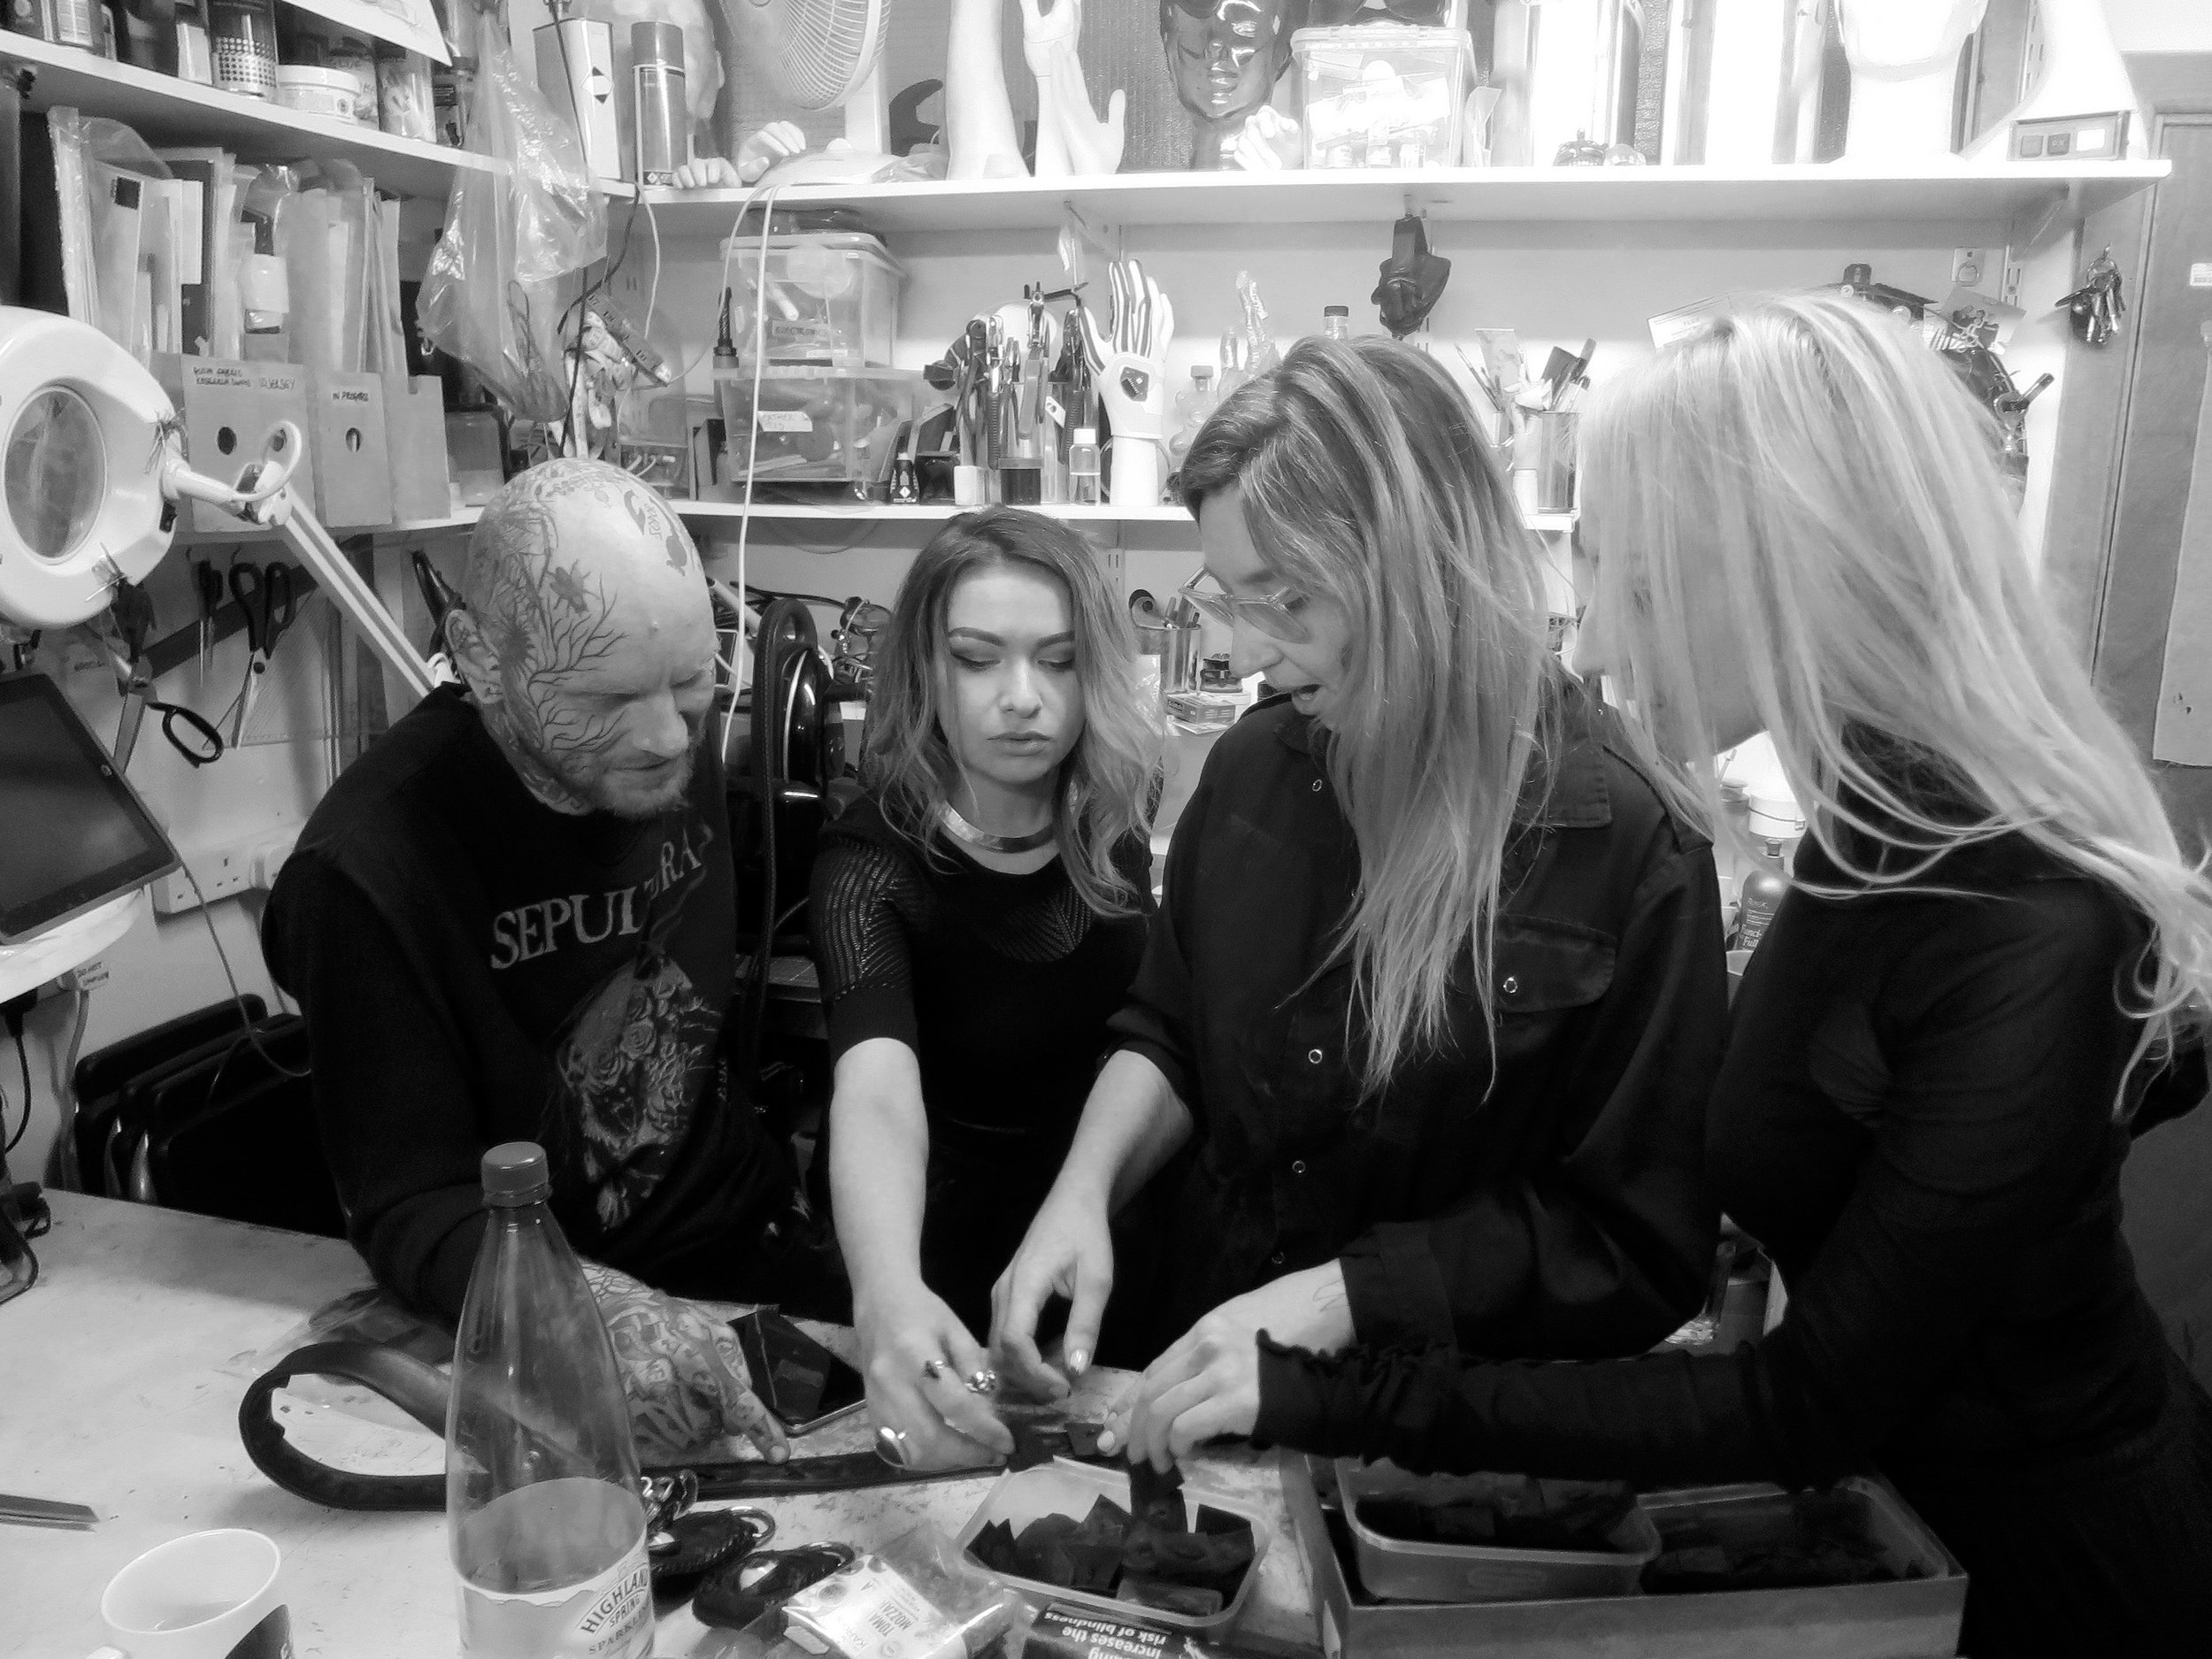 everyone gets involved selecting nipples for Raf's upcycled leather belt